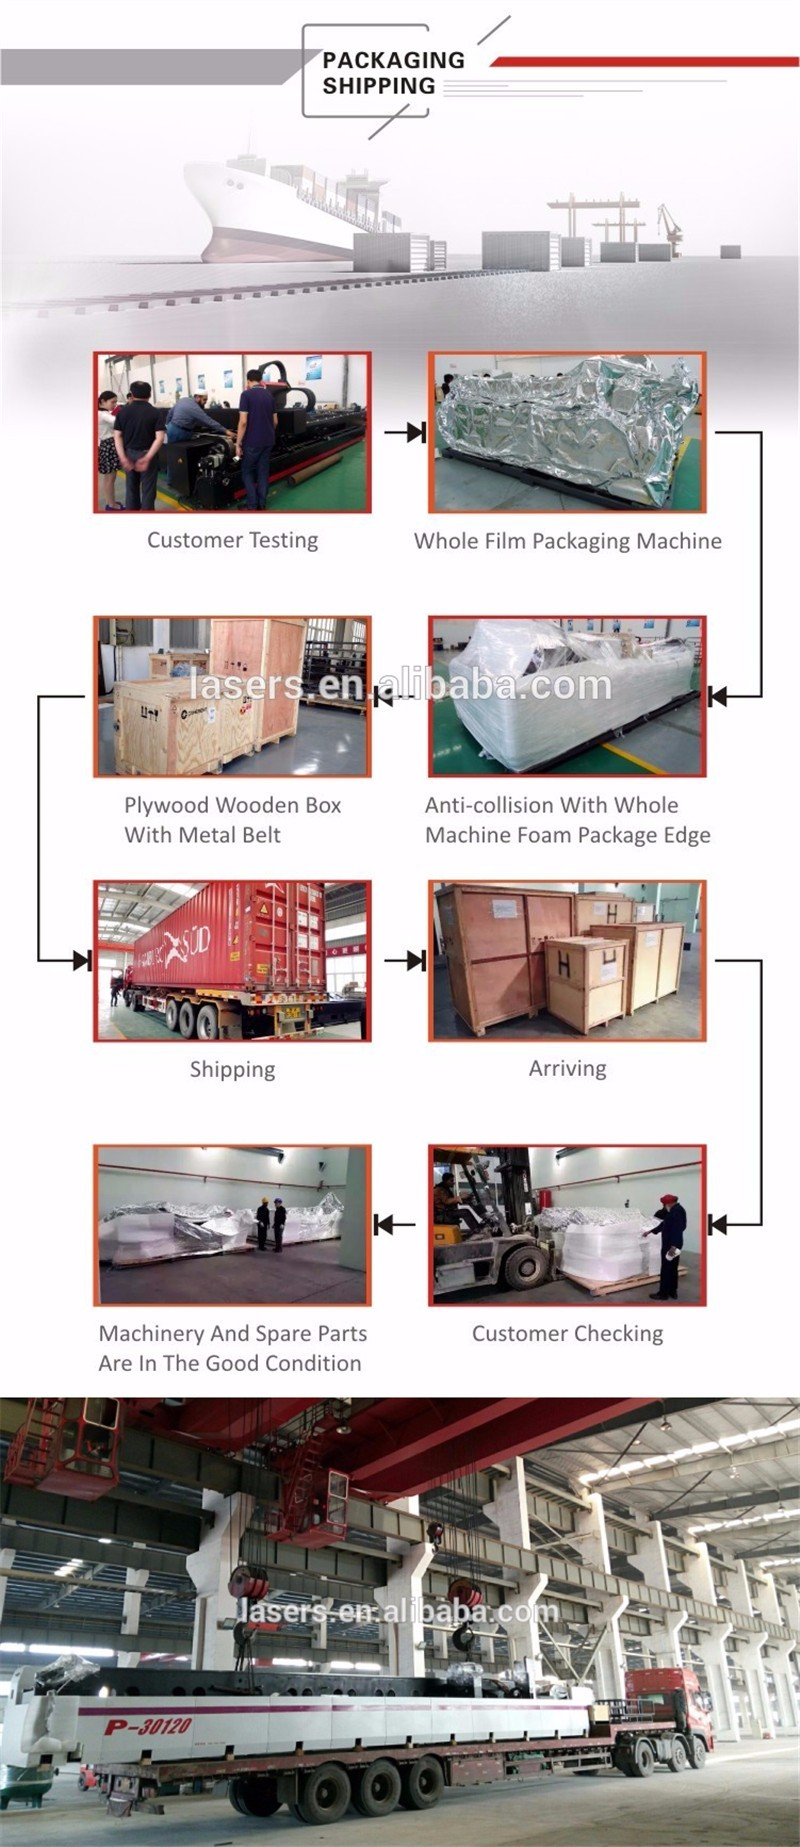 Cnc Metal Pipe Tube Fiber Laser Cutting Machine Price For Stainless / Carbon / Mild Steel / Brass / Copper